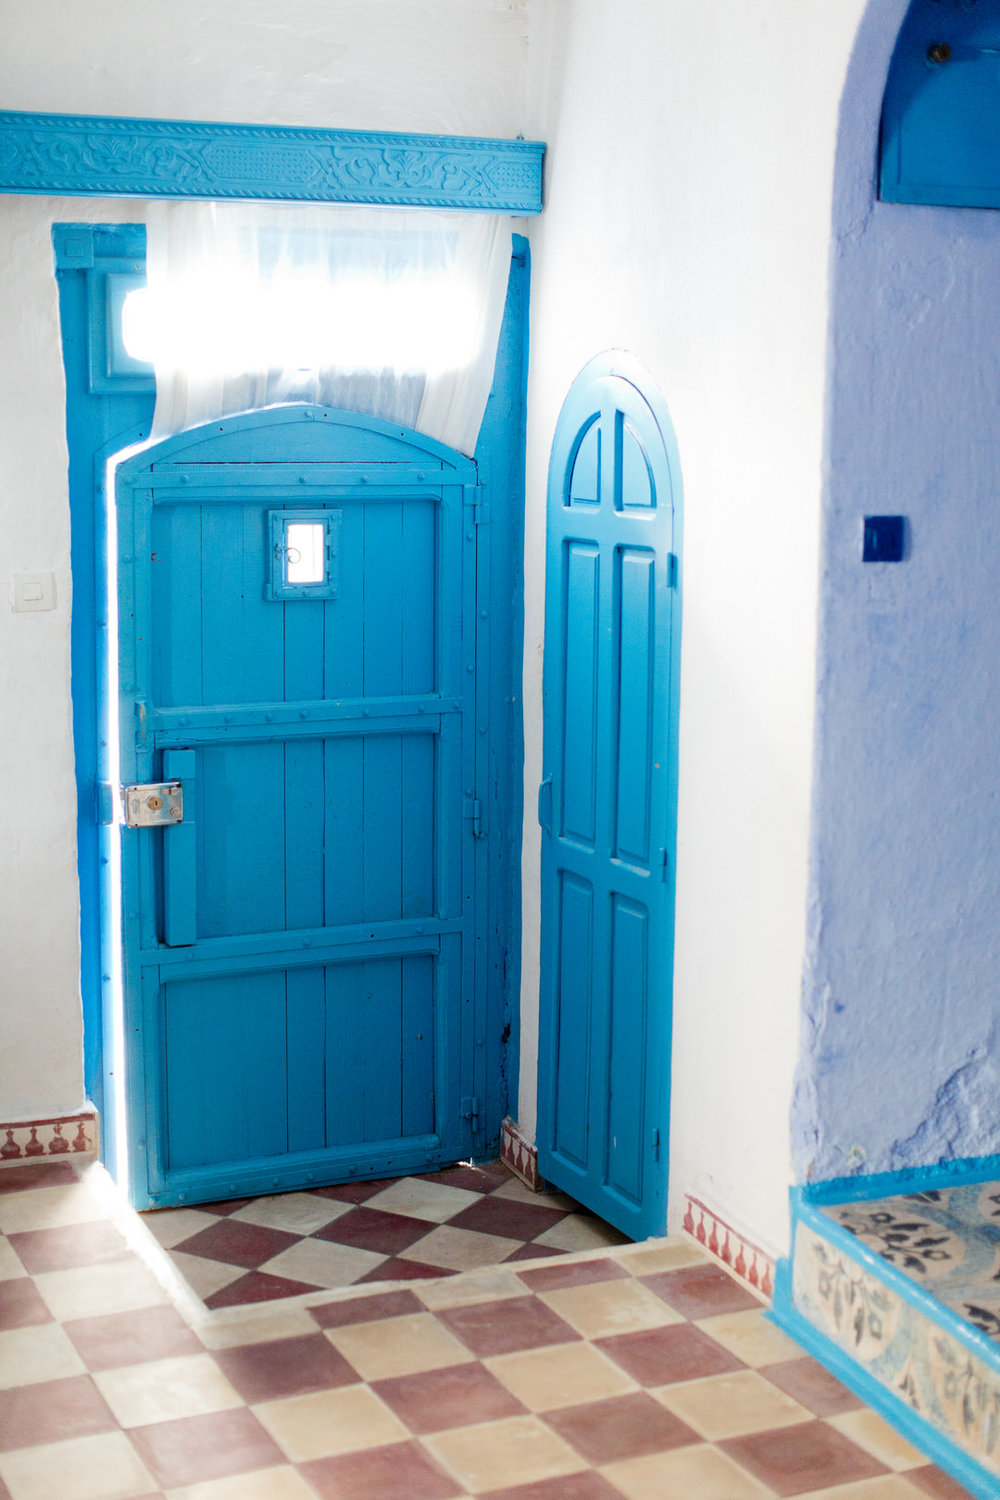 Melissa Kruse Photography - Chefchaouen Morocco (web)-5.jpg